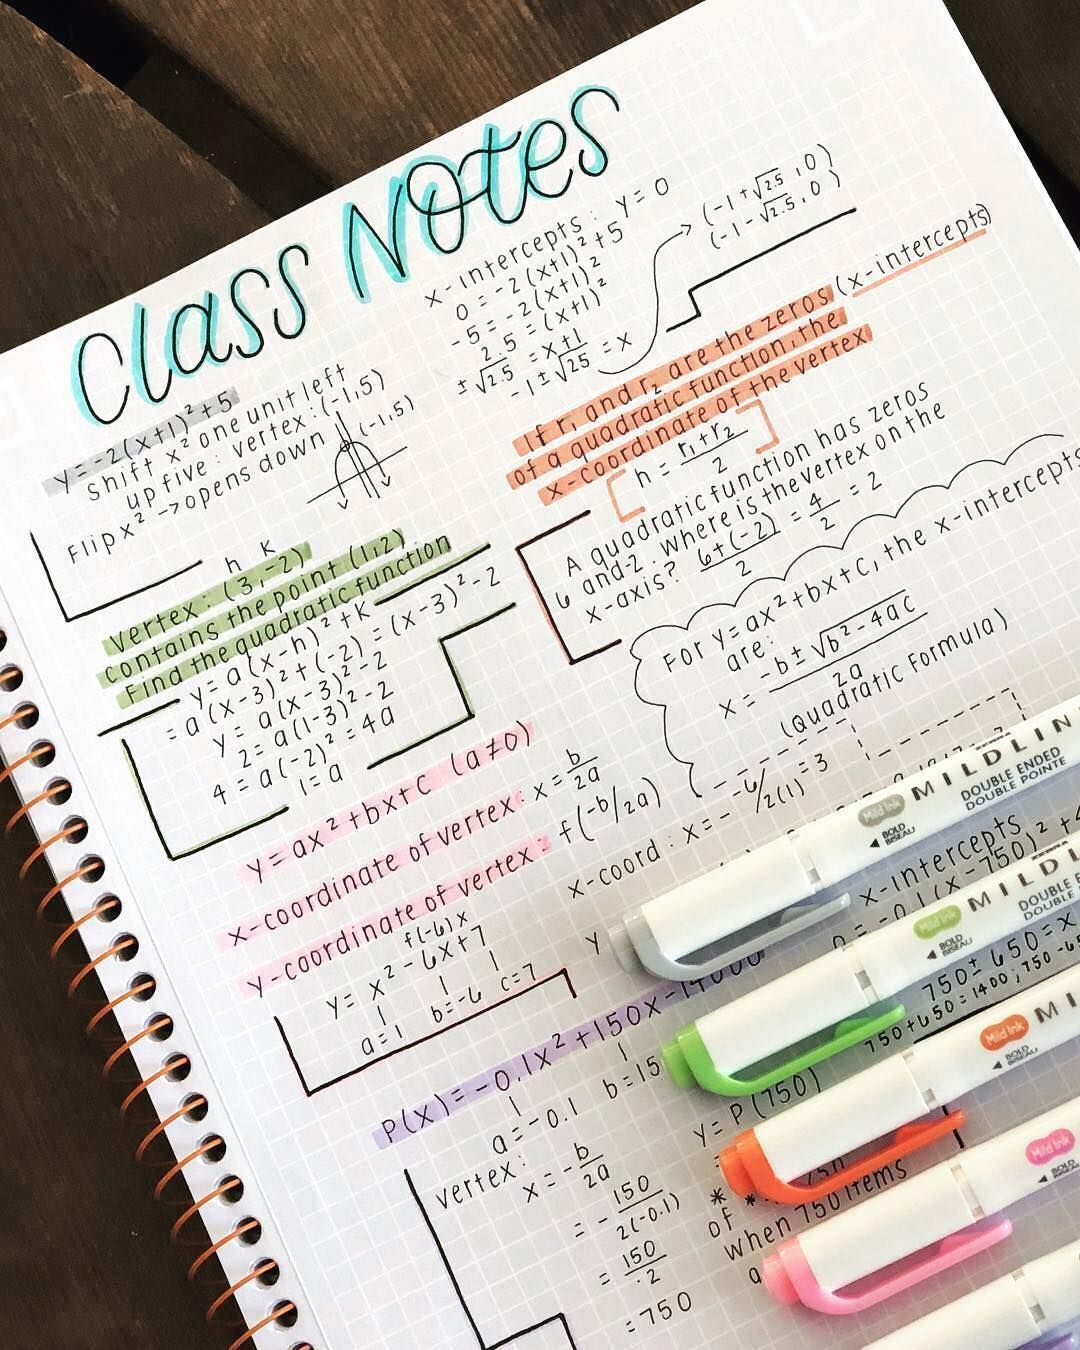 A m y on taking aesthetic math notes using a pen while the